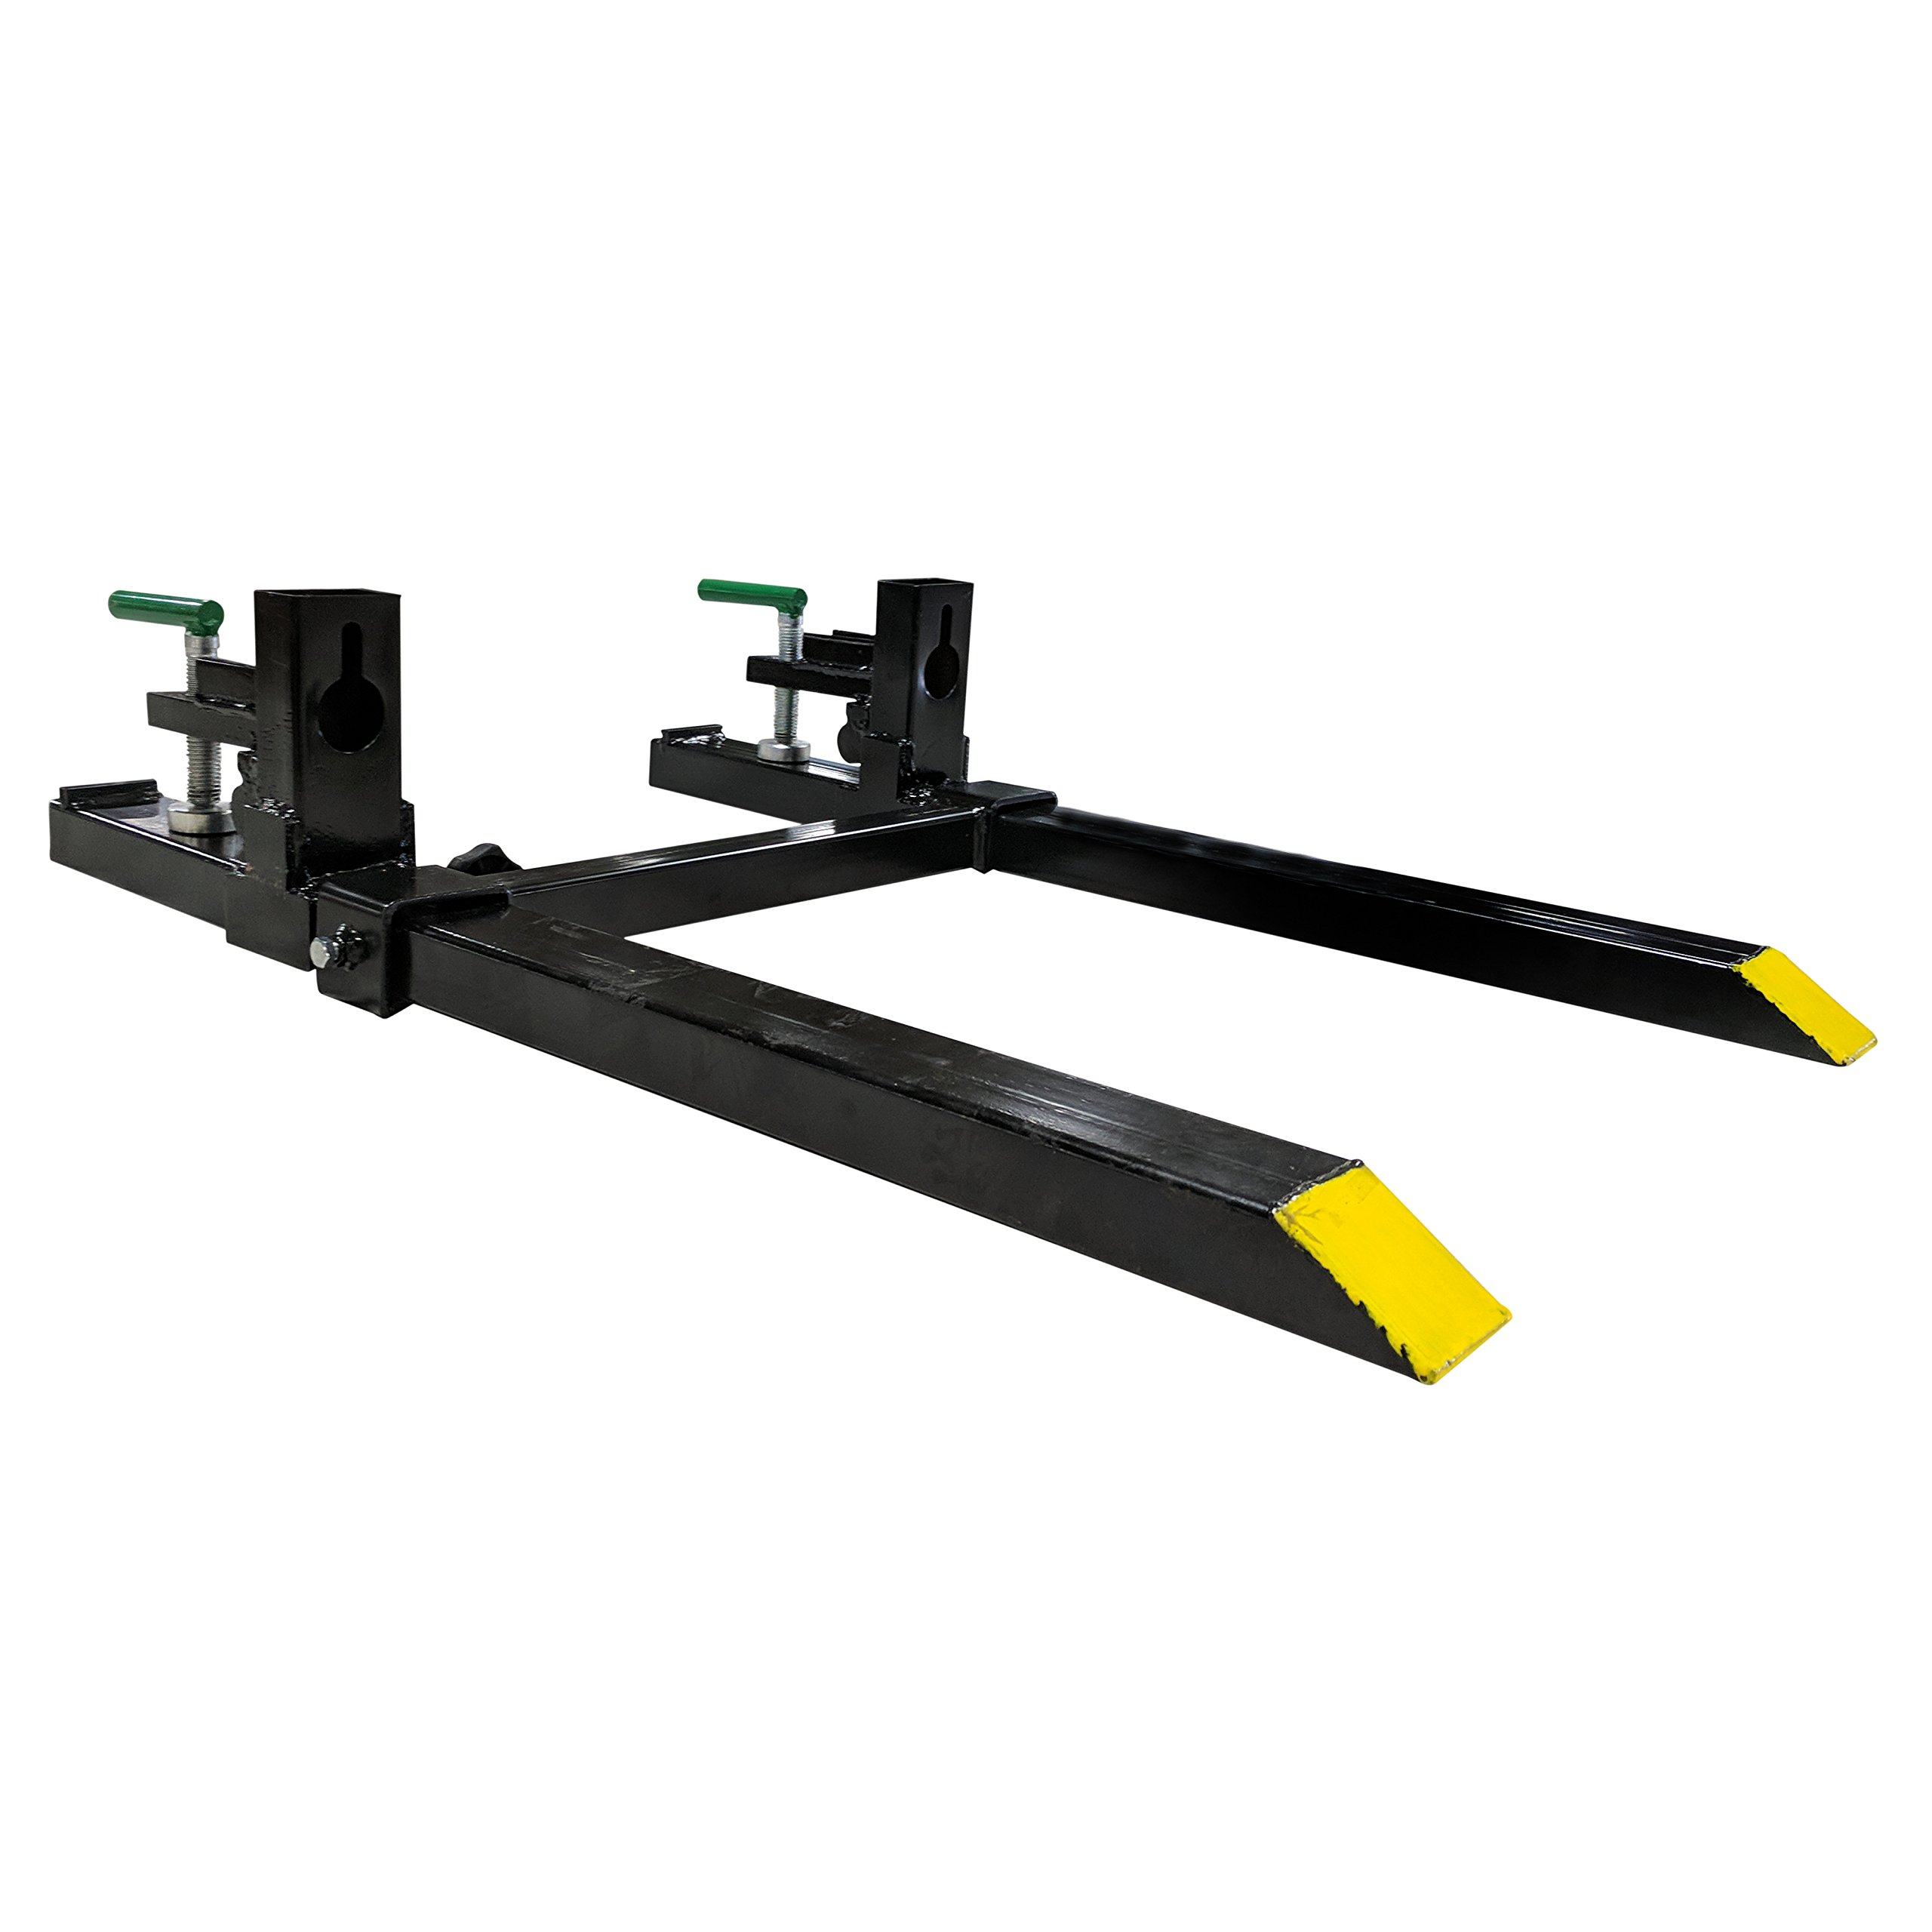 30'' LW Clamp on Pallet Forks w/ Adjustable Stabilizer Bar 1500lb Capacity Loader